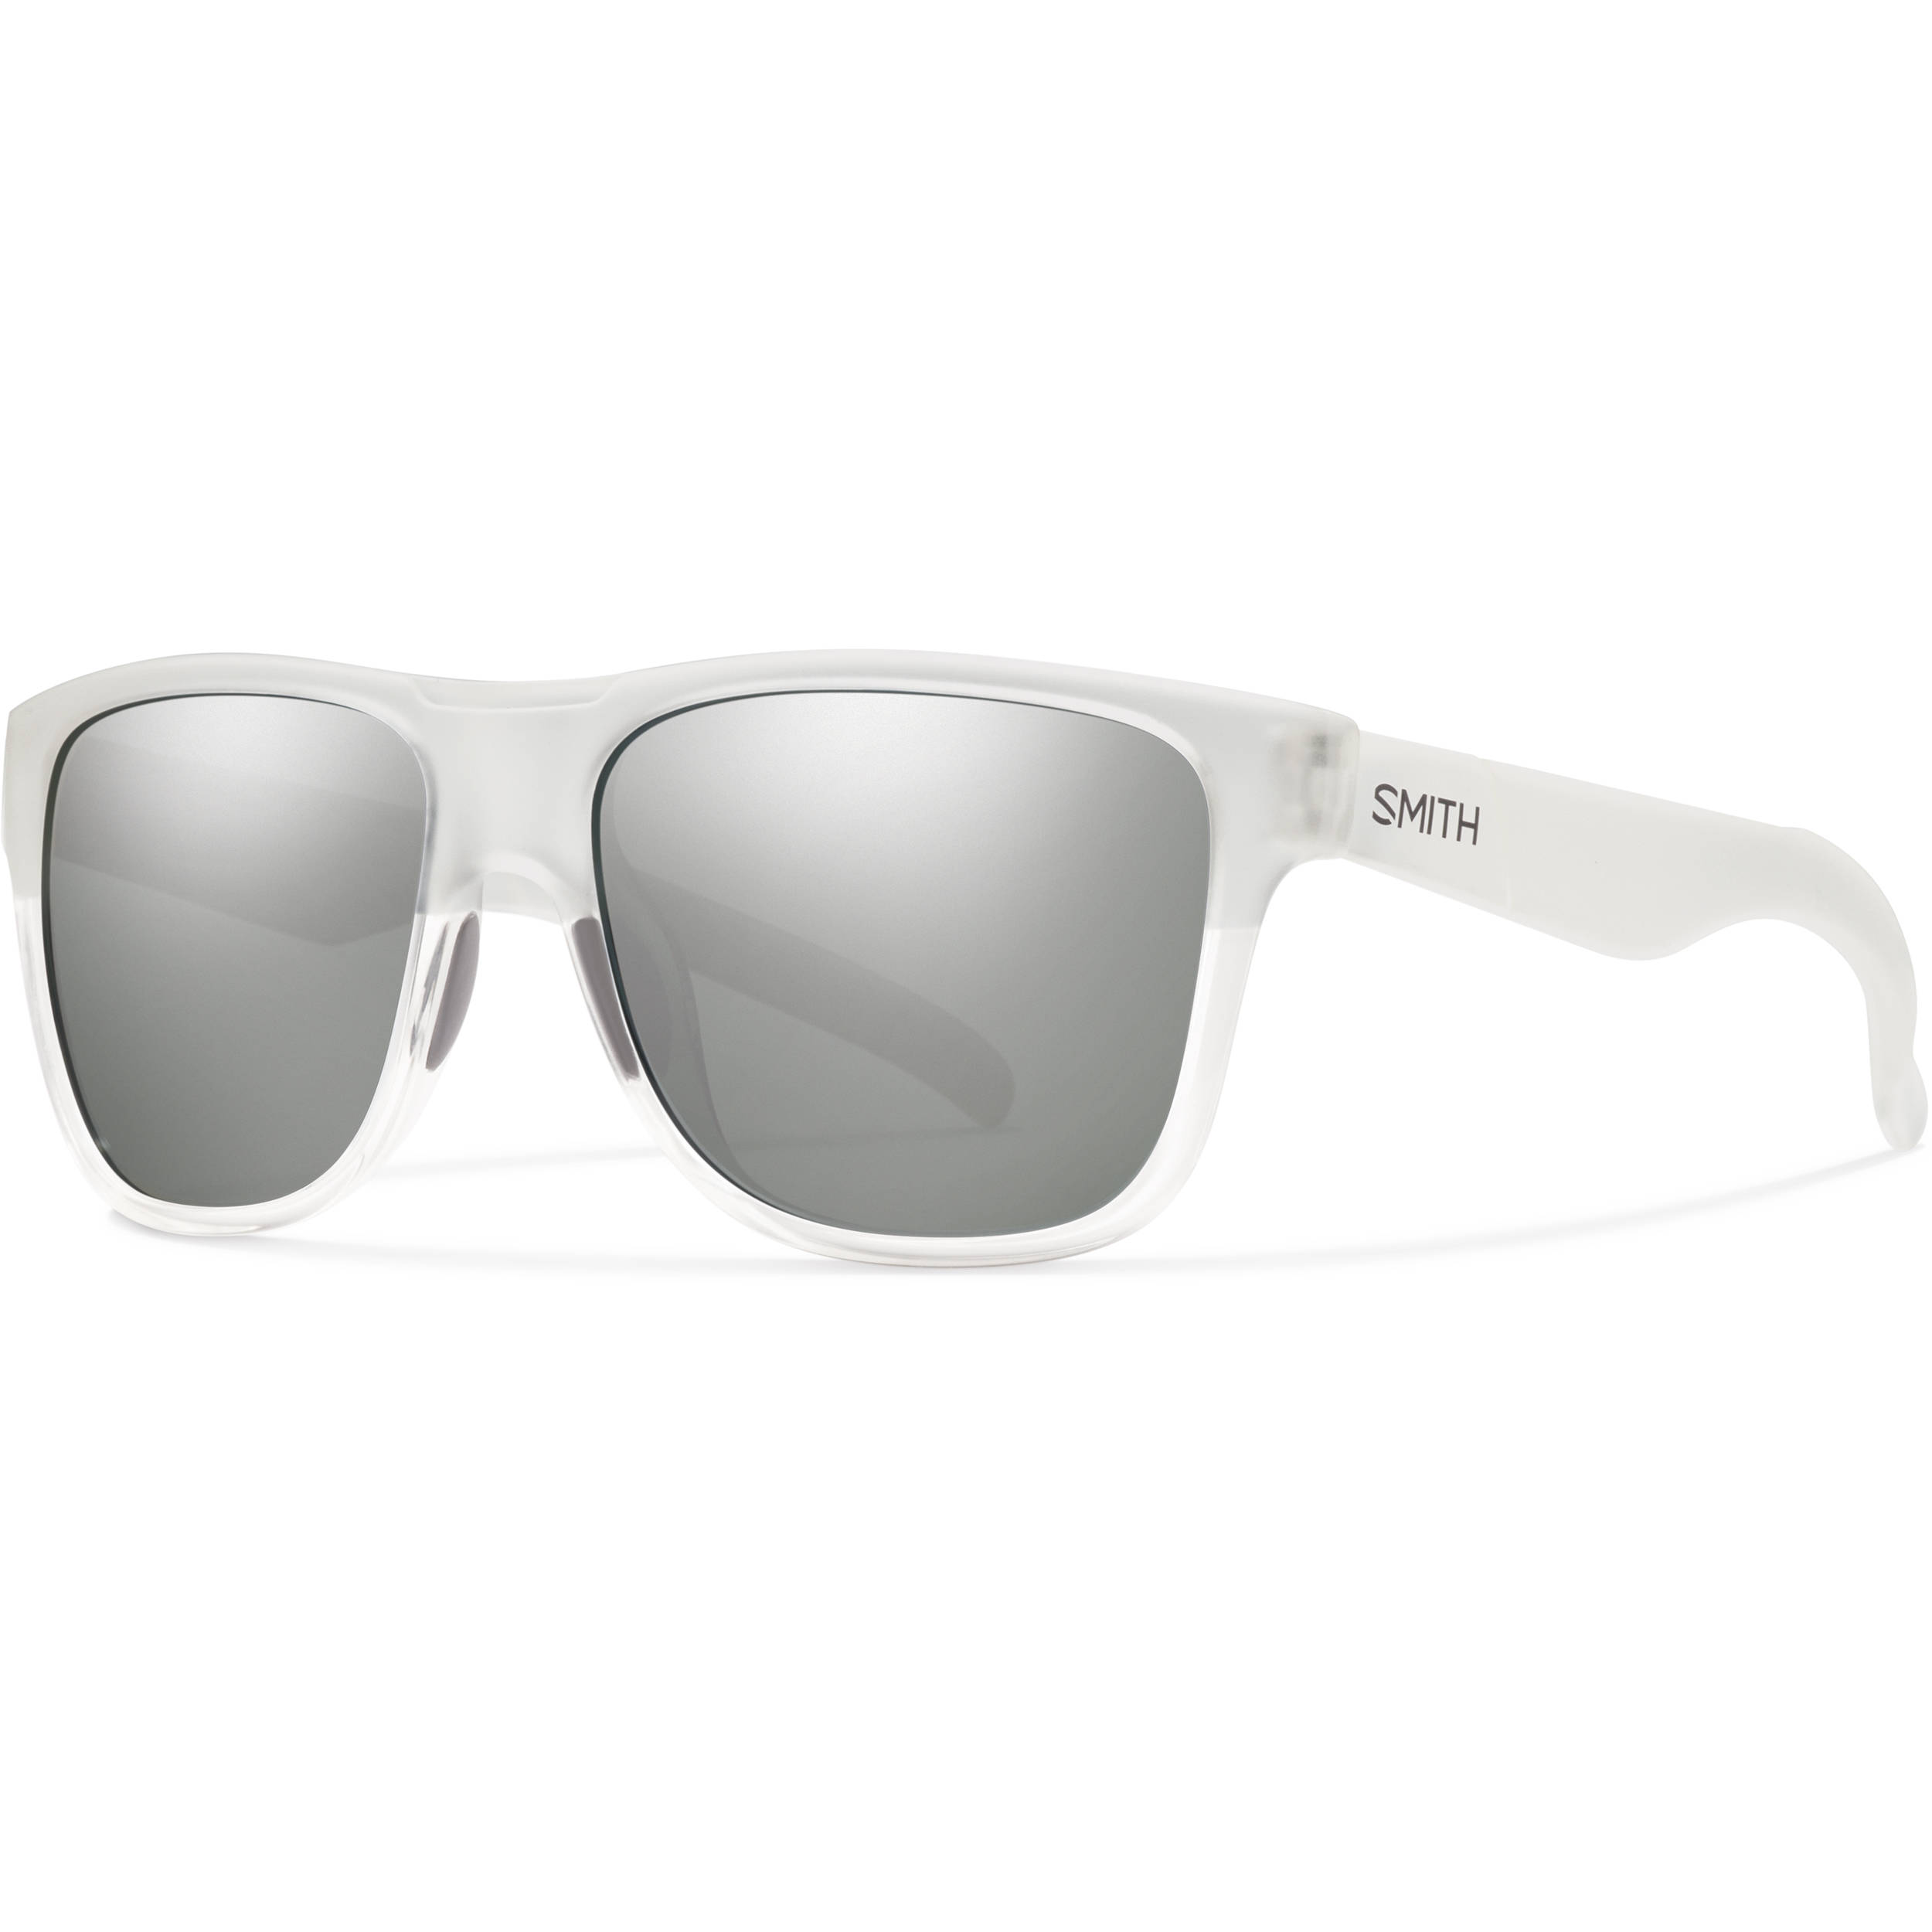 e6debaf8f1 Smith Optics Lowdown XL Men s Sunglasses with Super Platinum Lenses  (Crystal Split Frame)